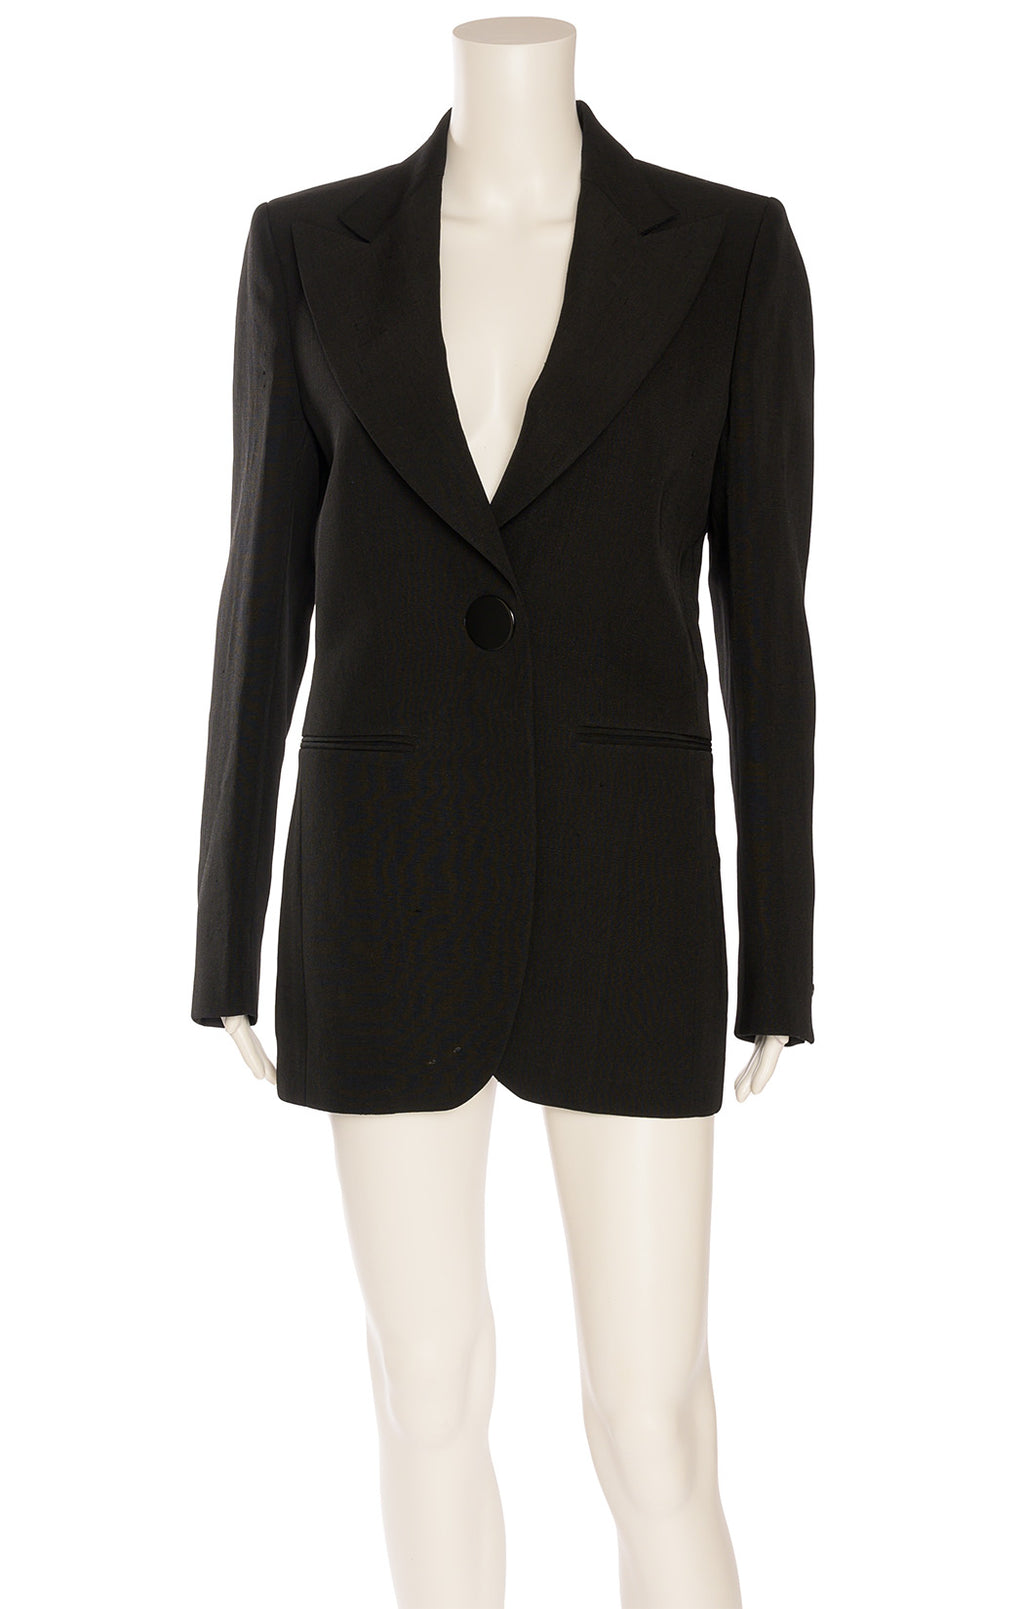 Black long sleeve one button front snap closure blazer with slit front pockets